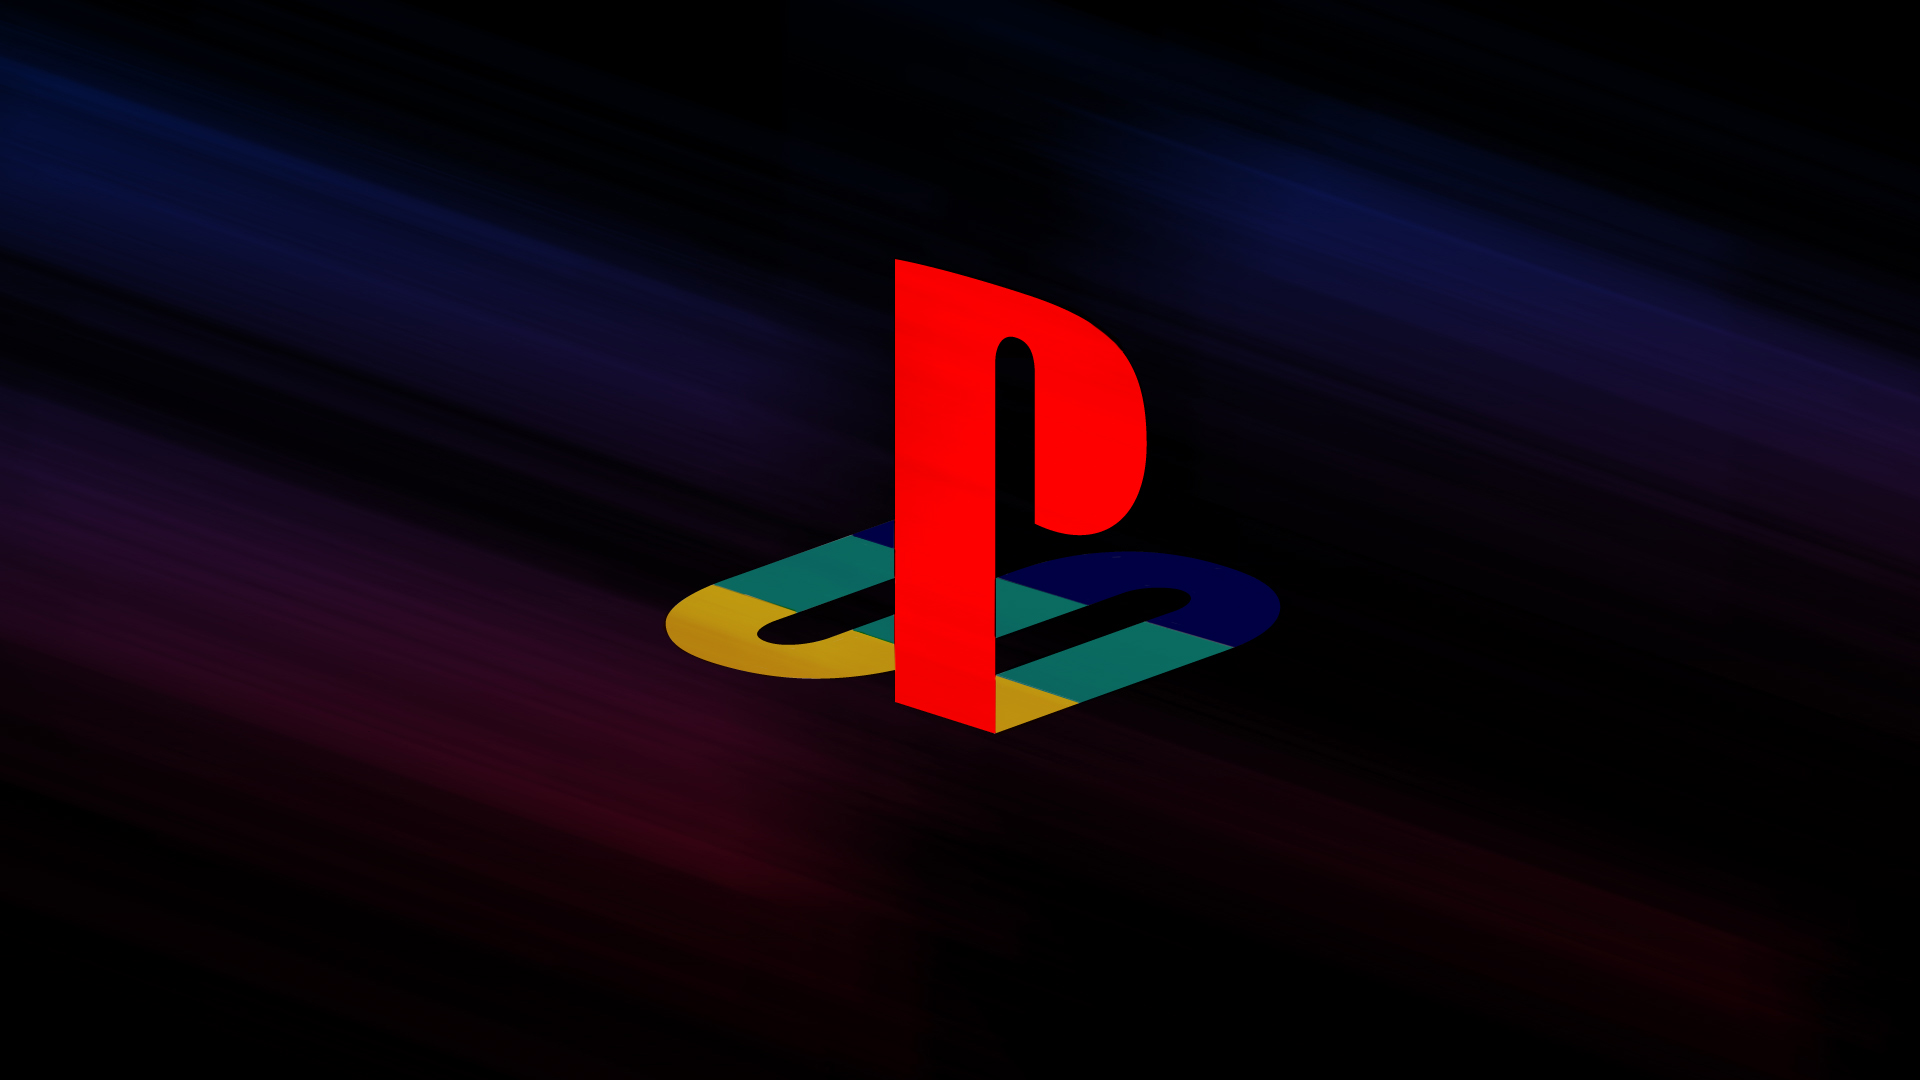 playstation 1 psx images playstation wallpaper hd